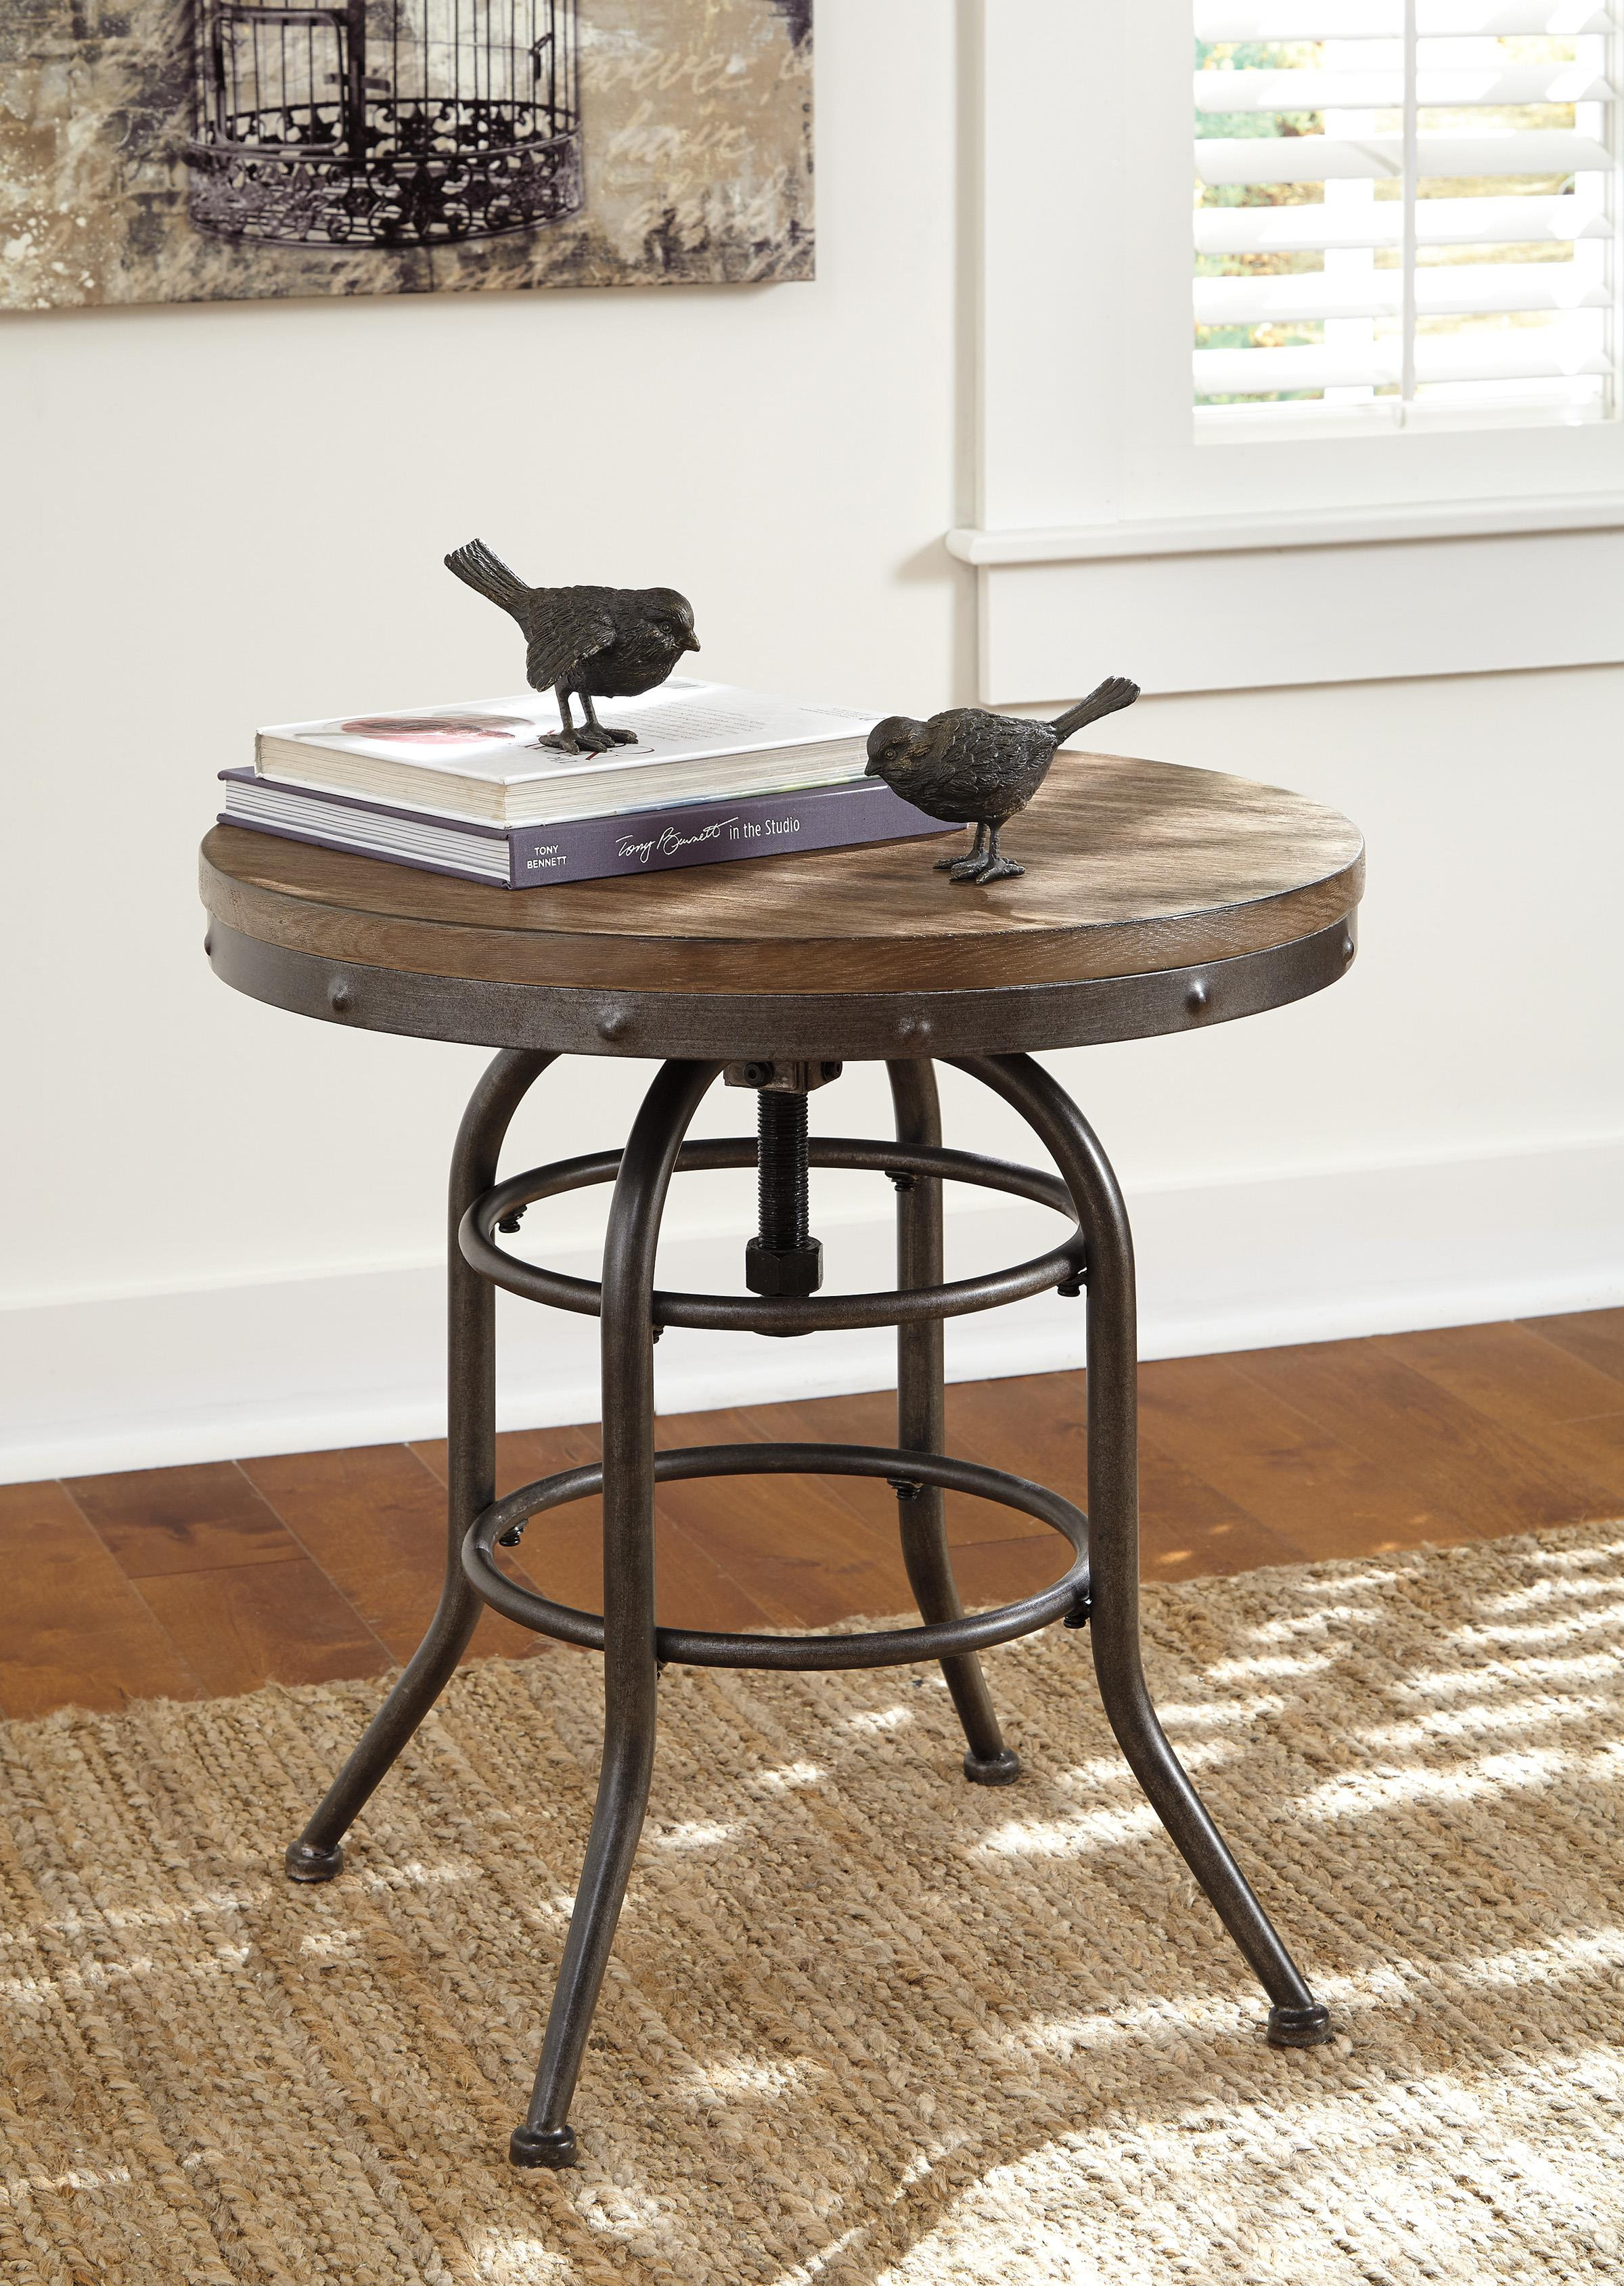 industrial style round end table with adjustable height signature products design ashley color rustic accents modern farmhouse accent contemporary lamp shades small coffee sets